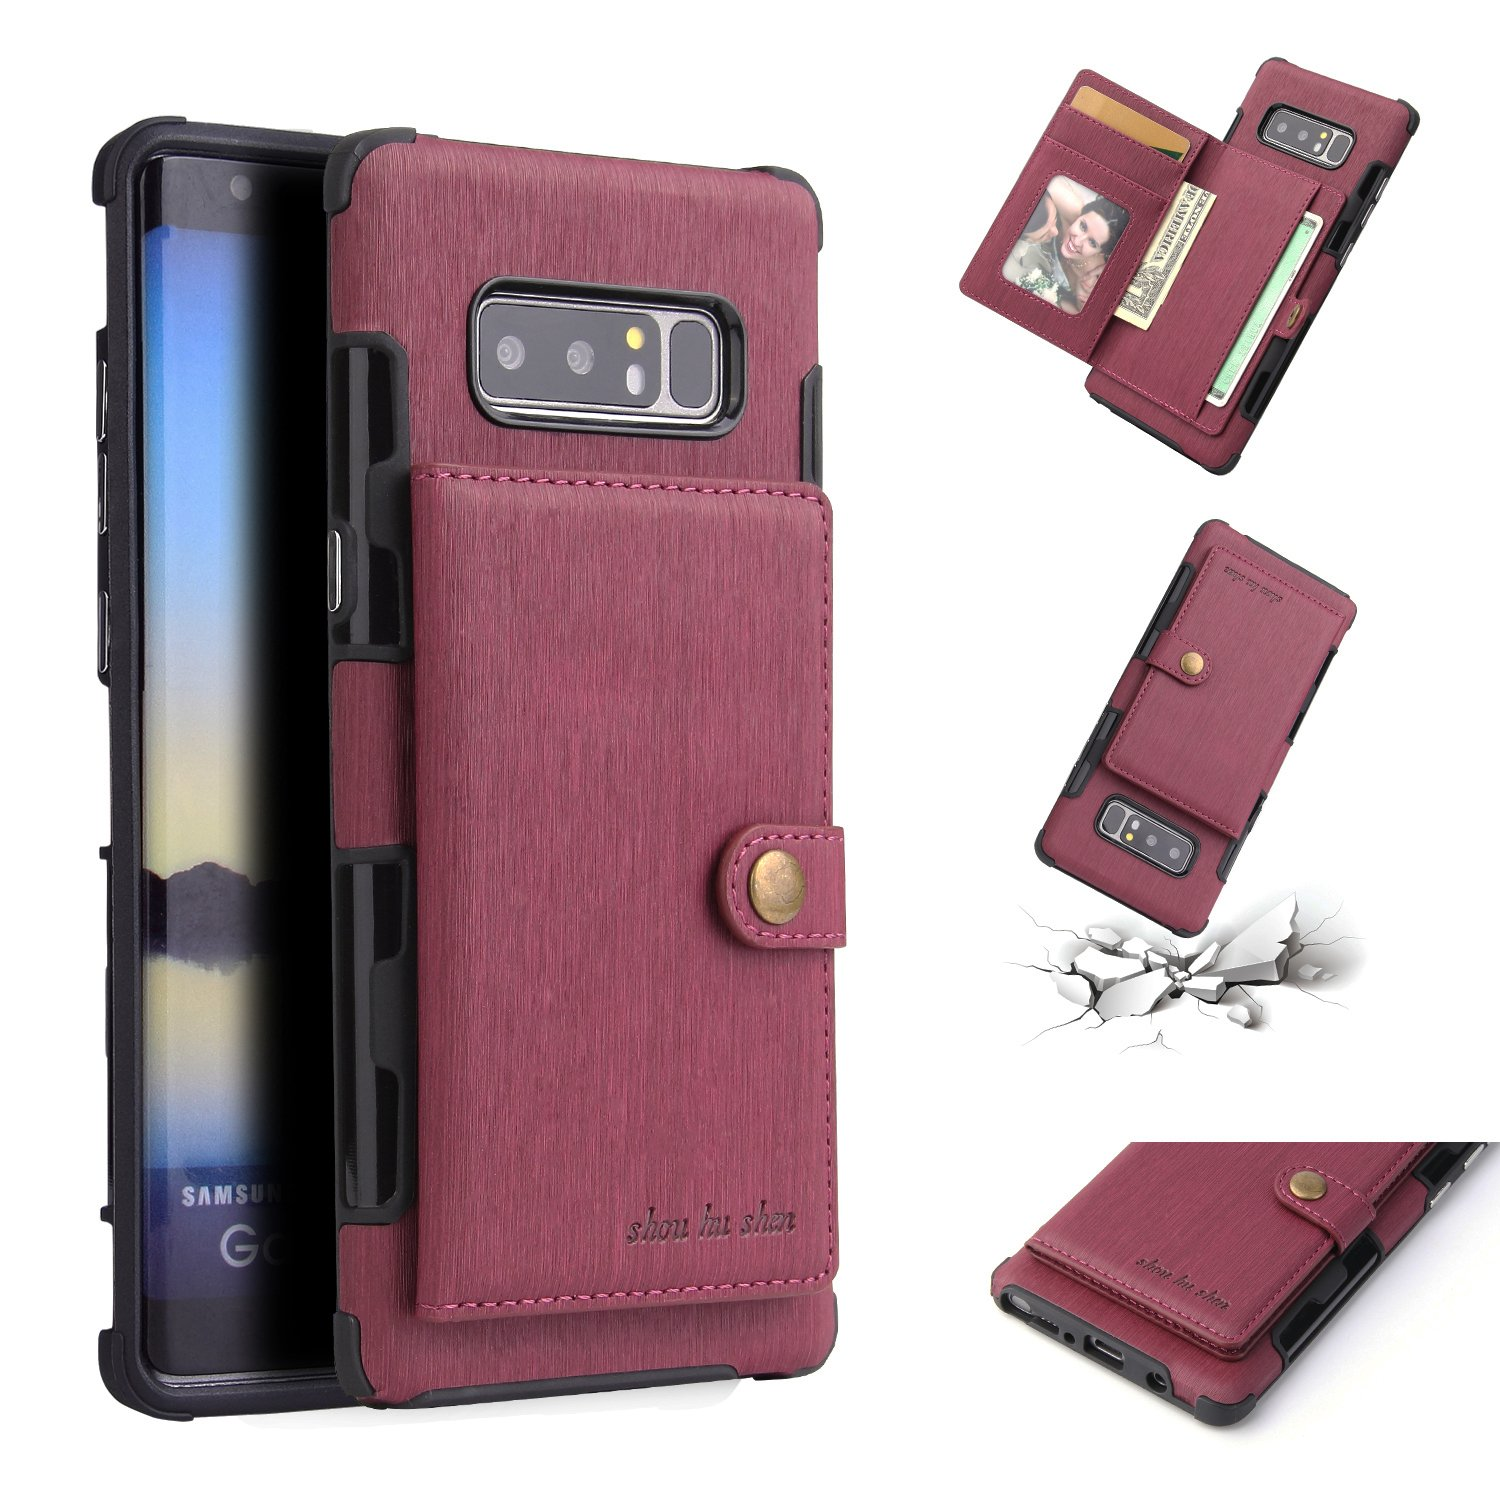 DAMONDY Galaxy Note 8 Case,Luxury Brushed Wallet Card Holders Slot Design Cover Soft Shockproof Bumper Premium Leather Magnetic Protective Case for Samsung Galaxy Note 8-Wine red